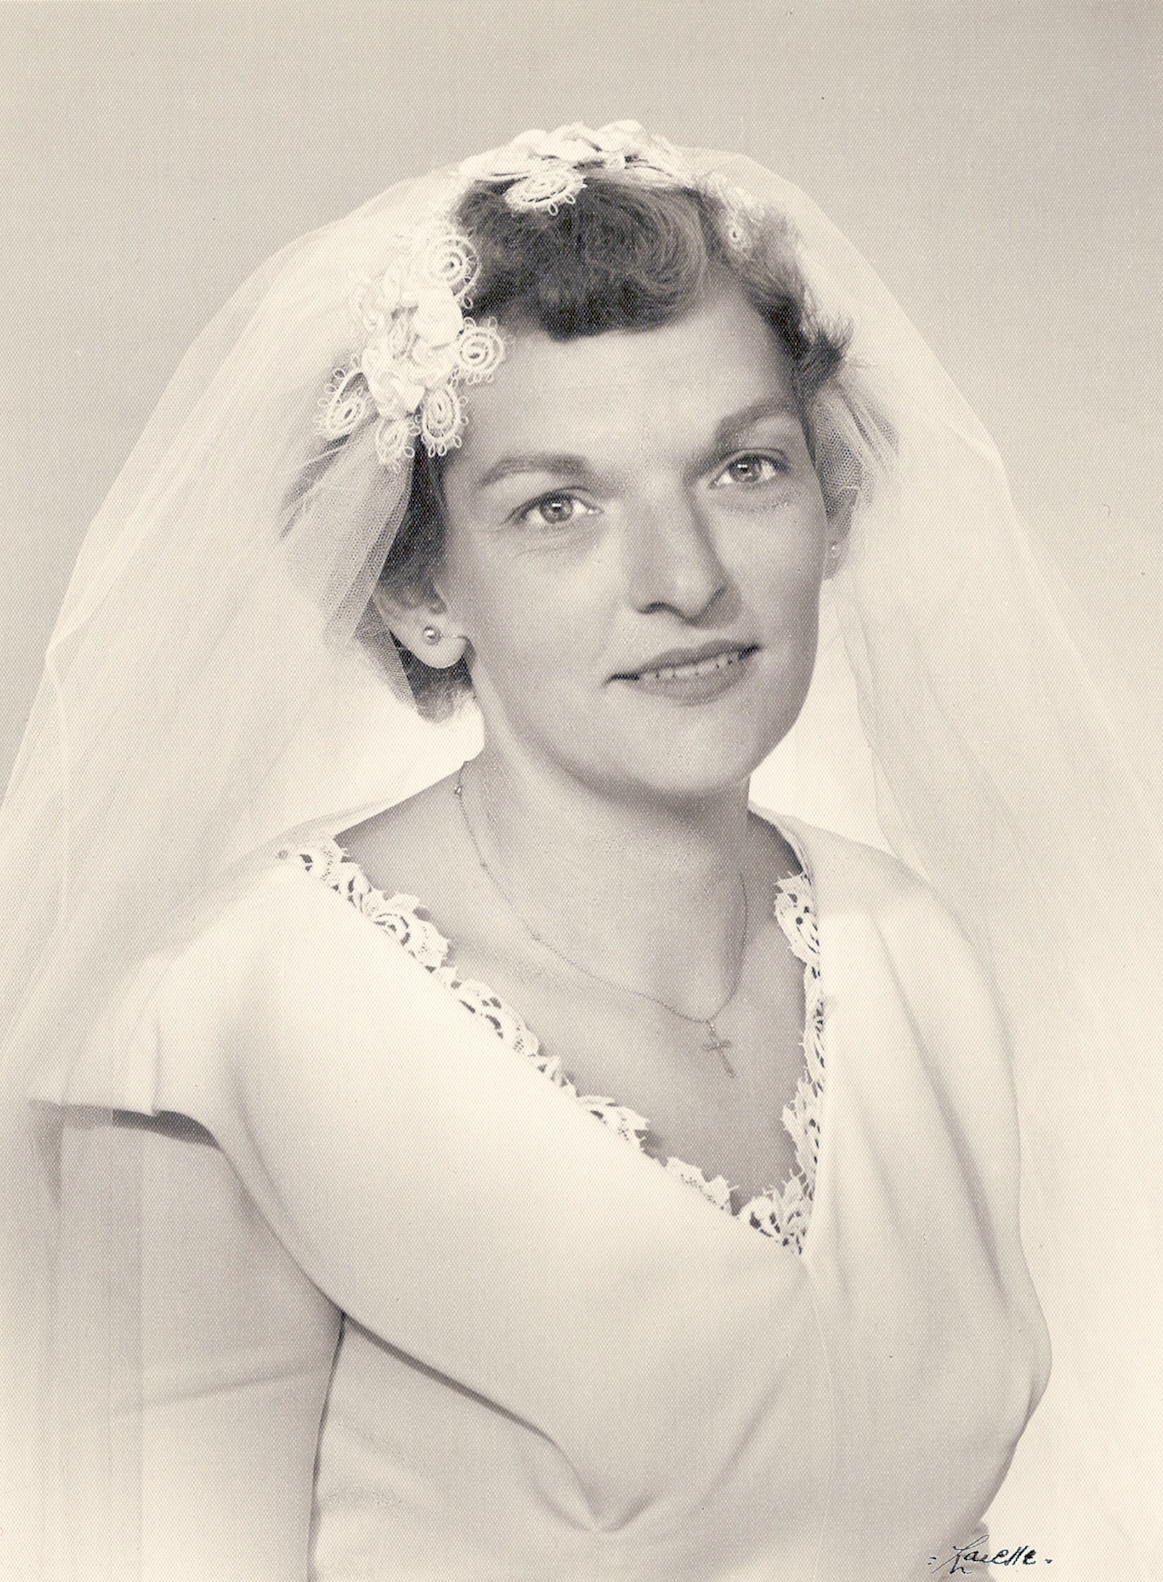 Mum at her wedding